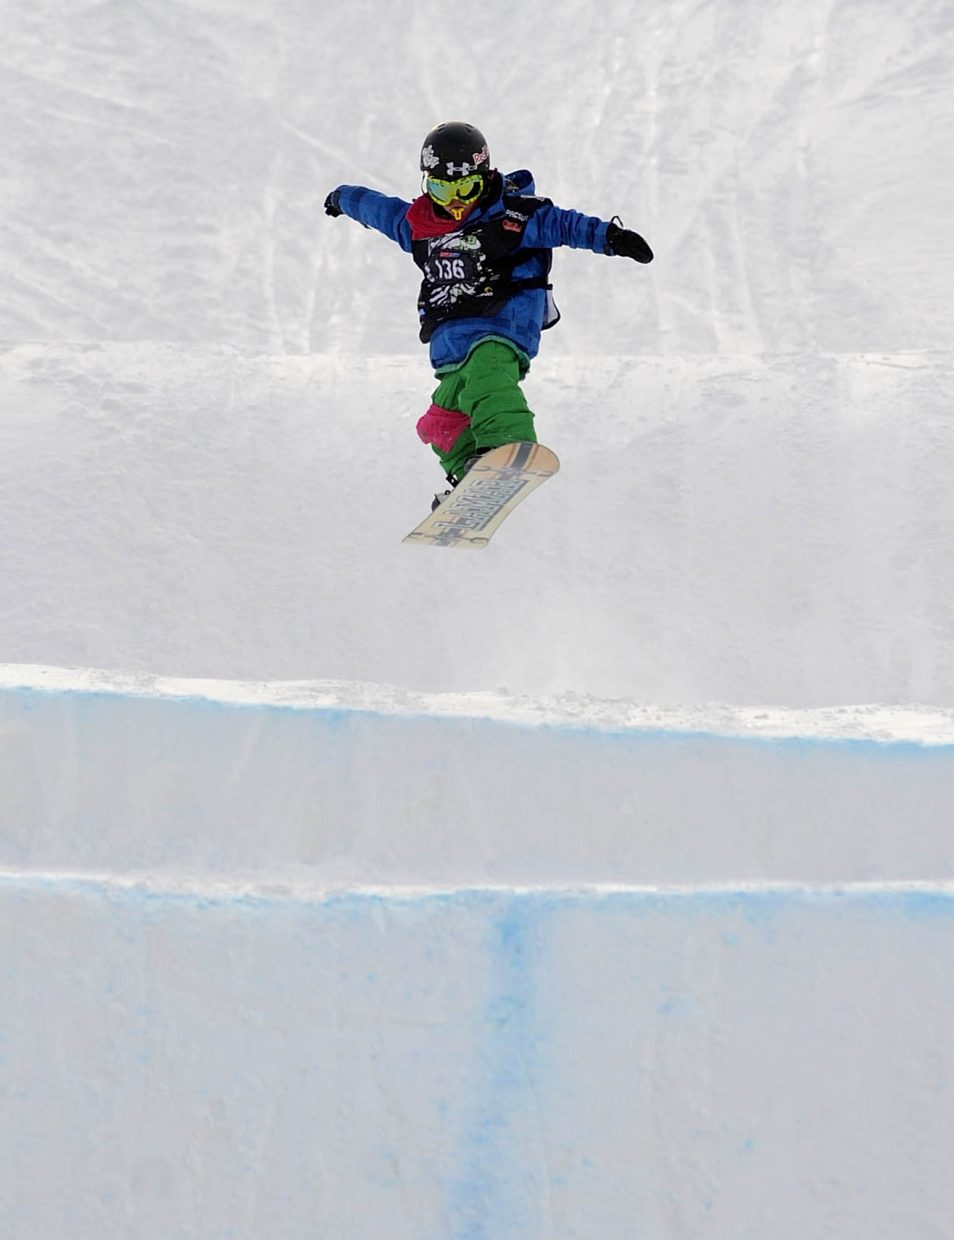 Jack Coyne, 9, of Edwards, gets air while competing in the Saturday's snowboard cross event at Steamboat Ski Area.